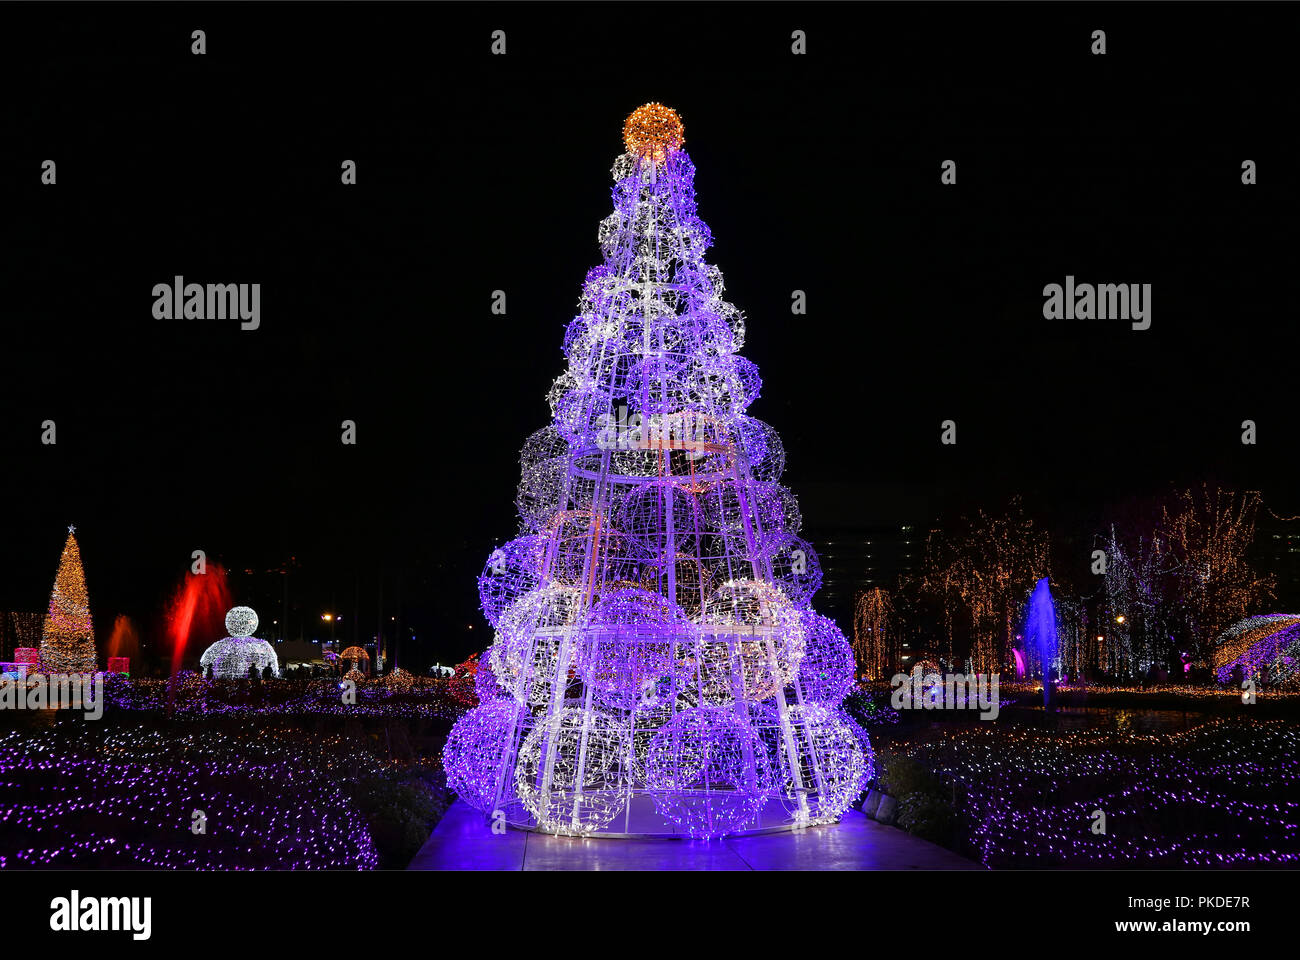 Outdoor Light Up Christmas Tree.Outdoor Illuminated Christmas Decorations Glittering Against